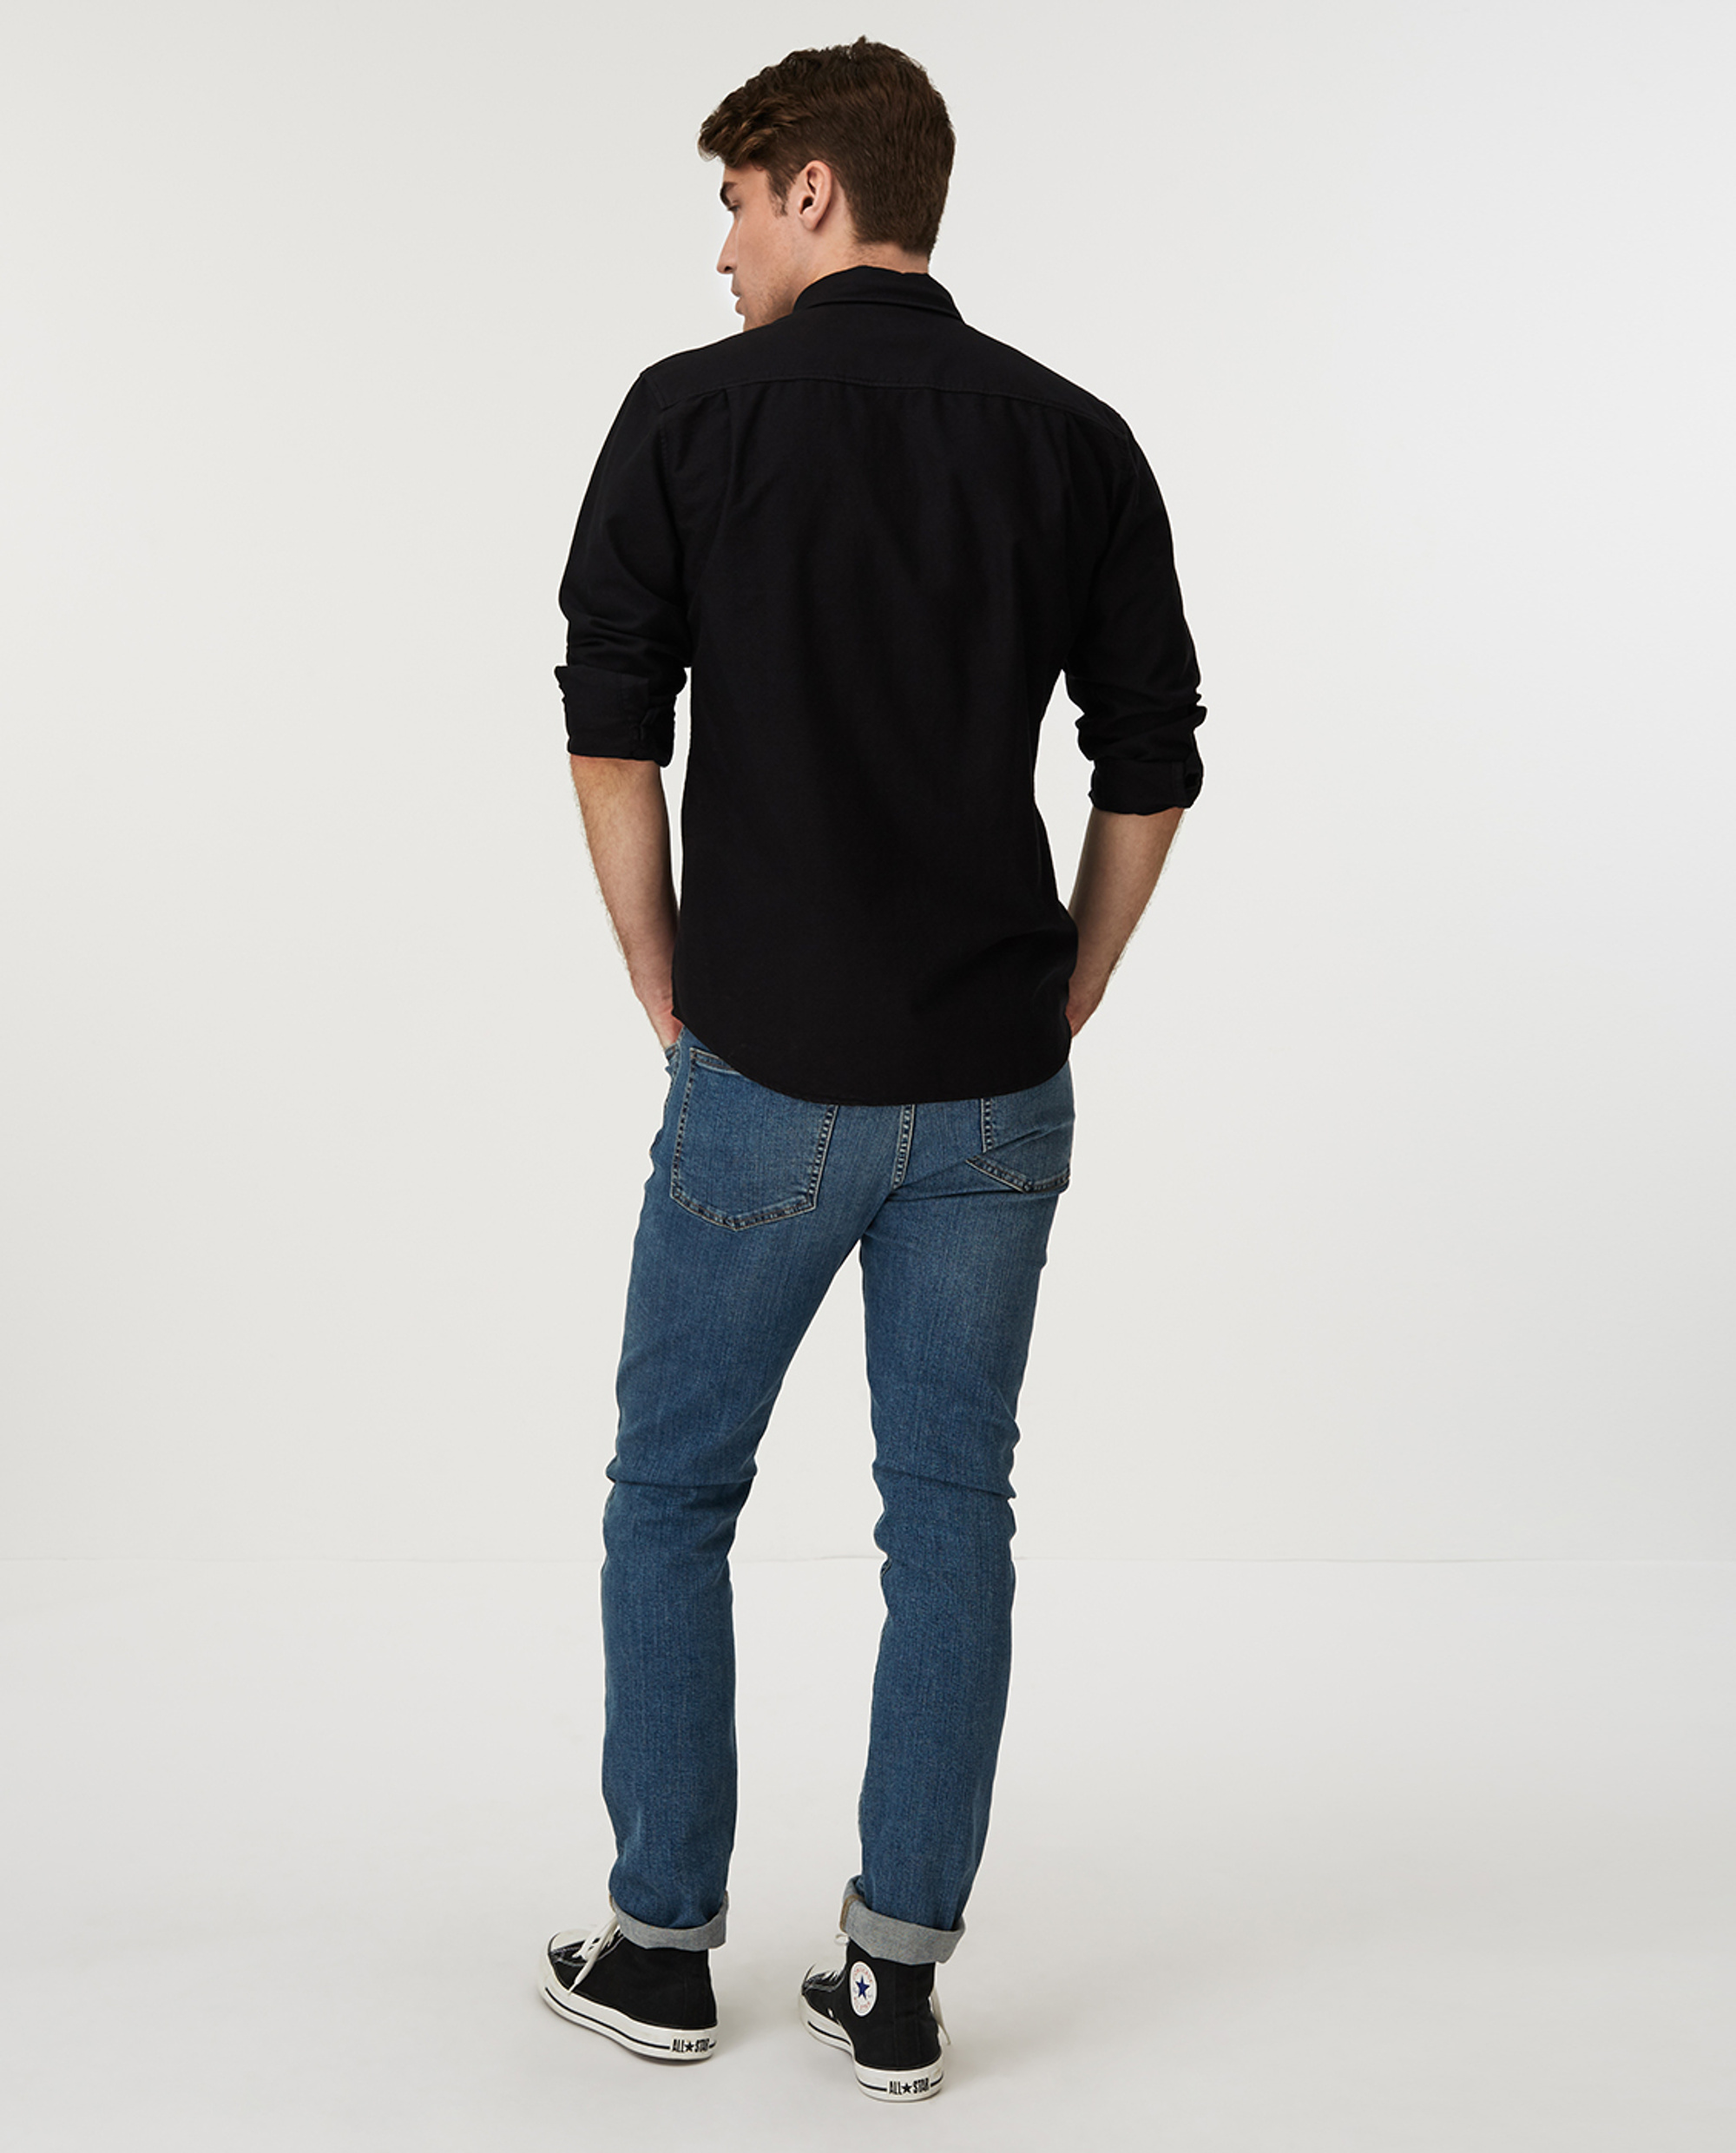 Kyle Oxford Organic Cotton Shirt, Black